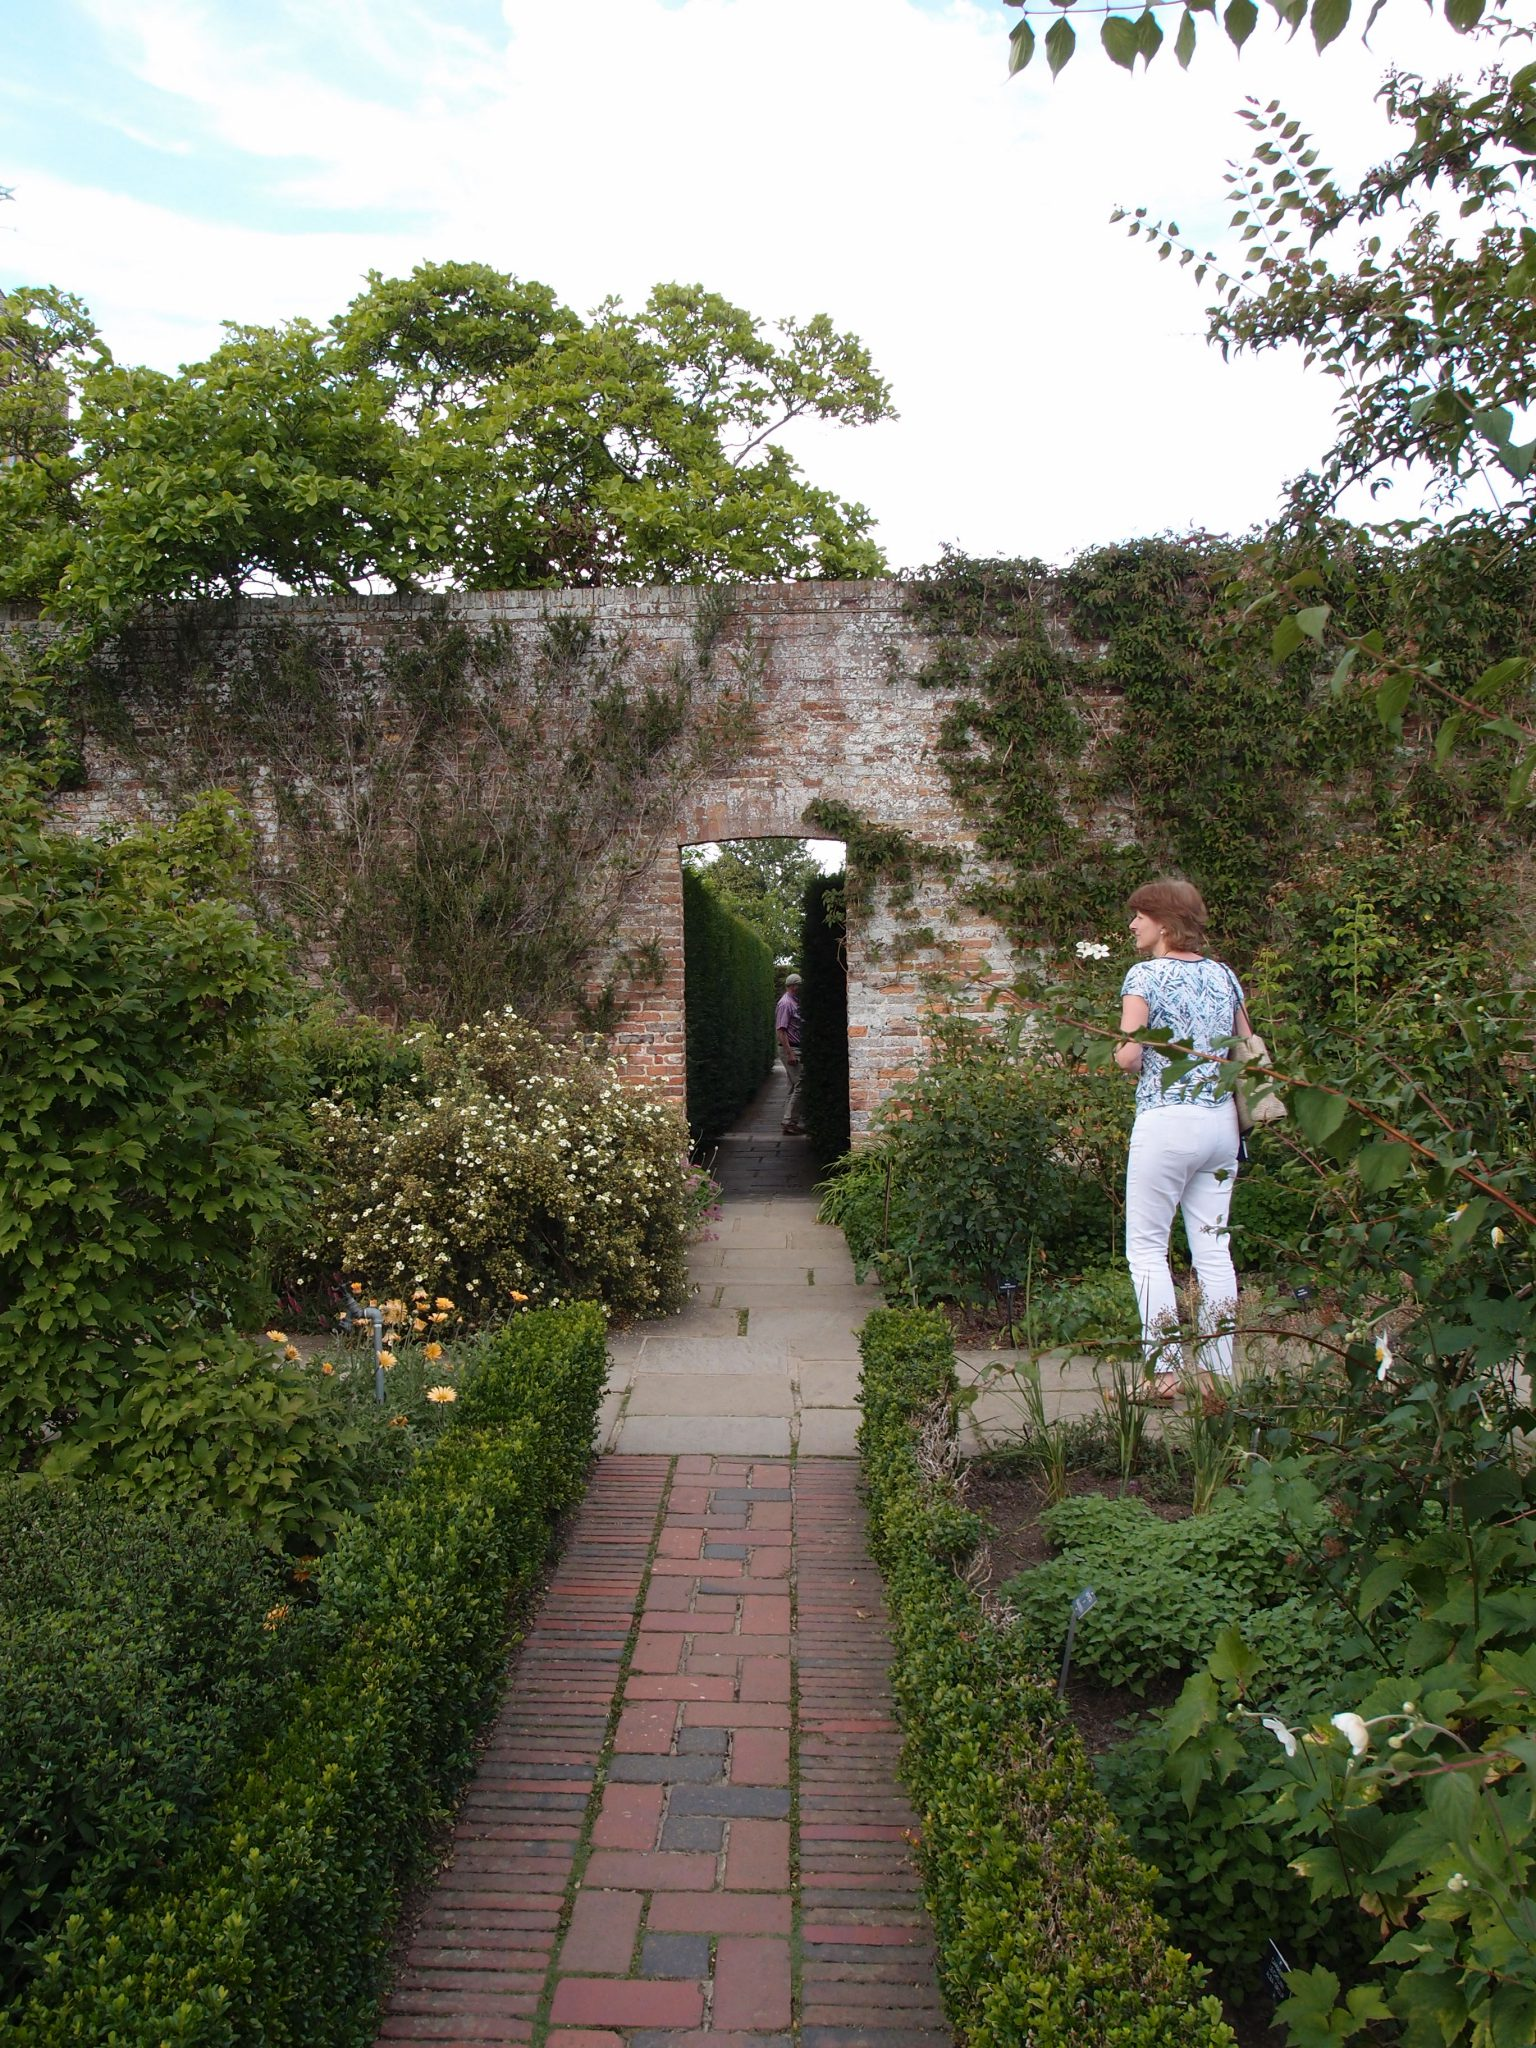 Amanda, by the Rose Garden wall, with a view down the narrow Yew Walk, which extends along the long, Eastern side of the Tower Lawn